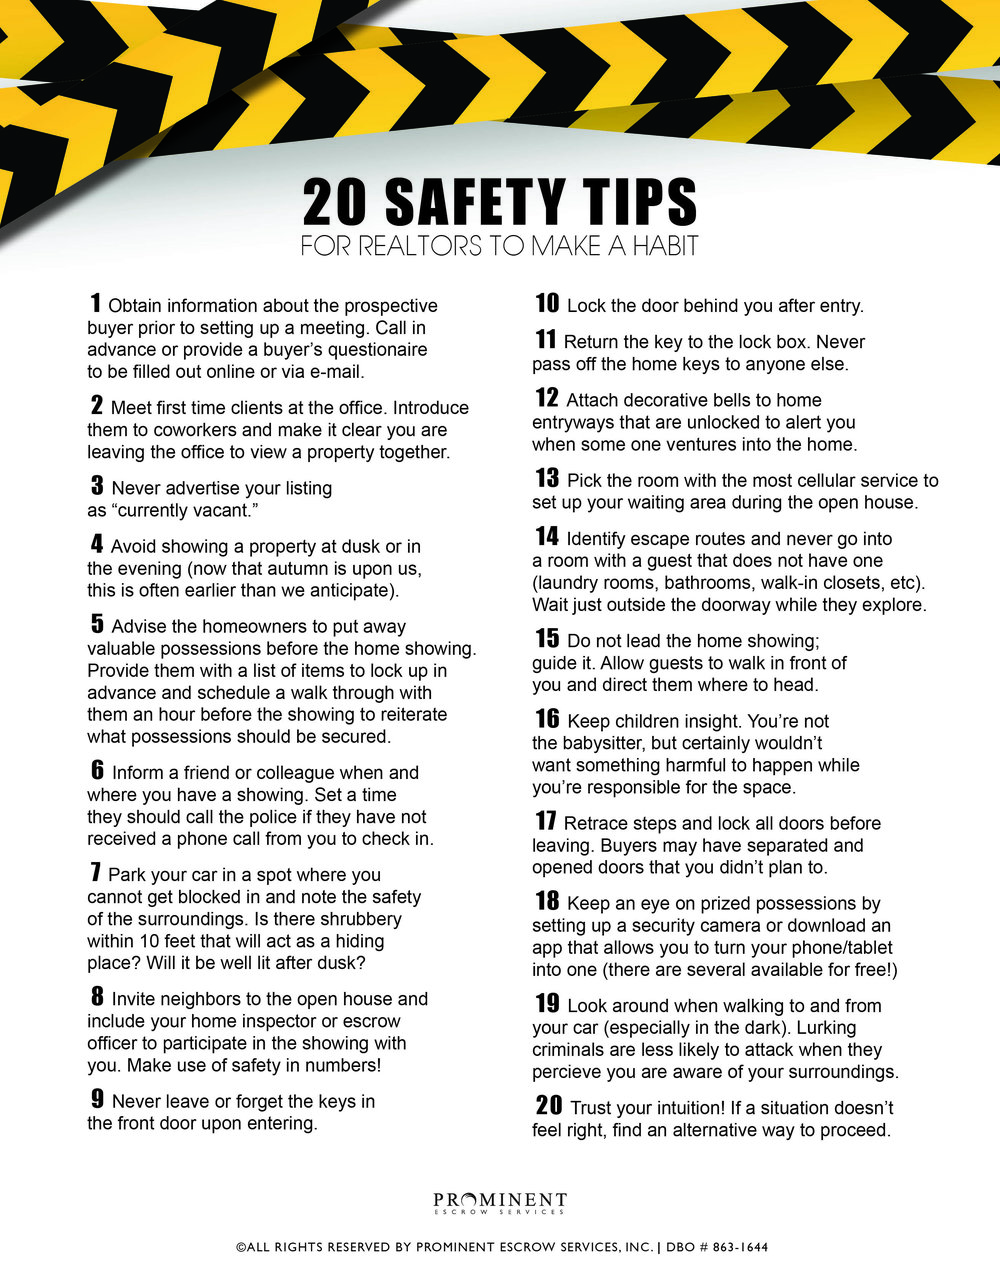 10-14-15 20-Safety-Tips-for-Realtors-to-Make-Habit_-Prominent-Escrow.jpg